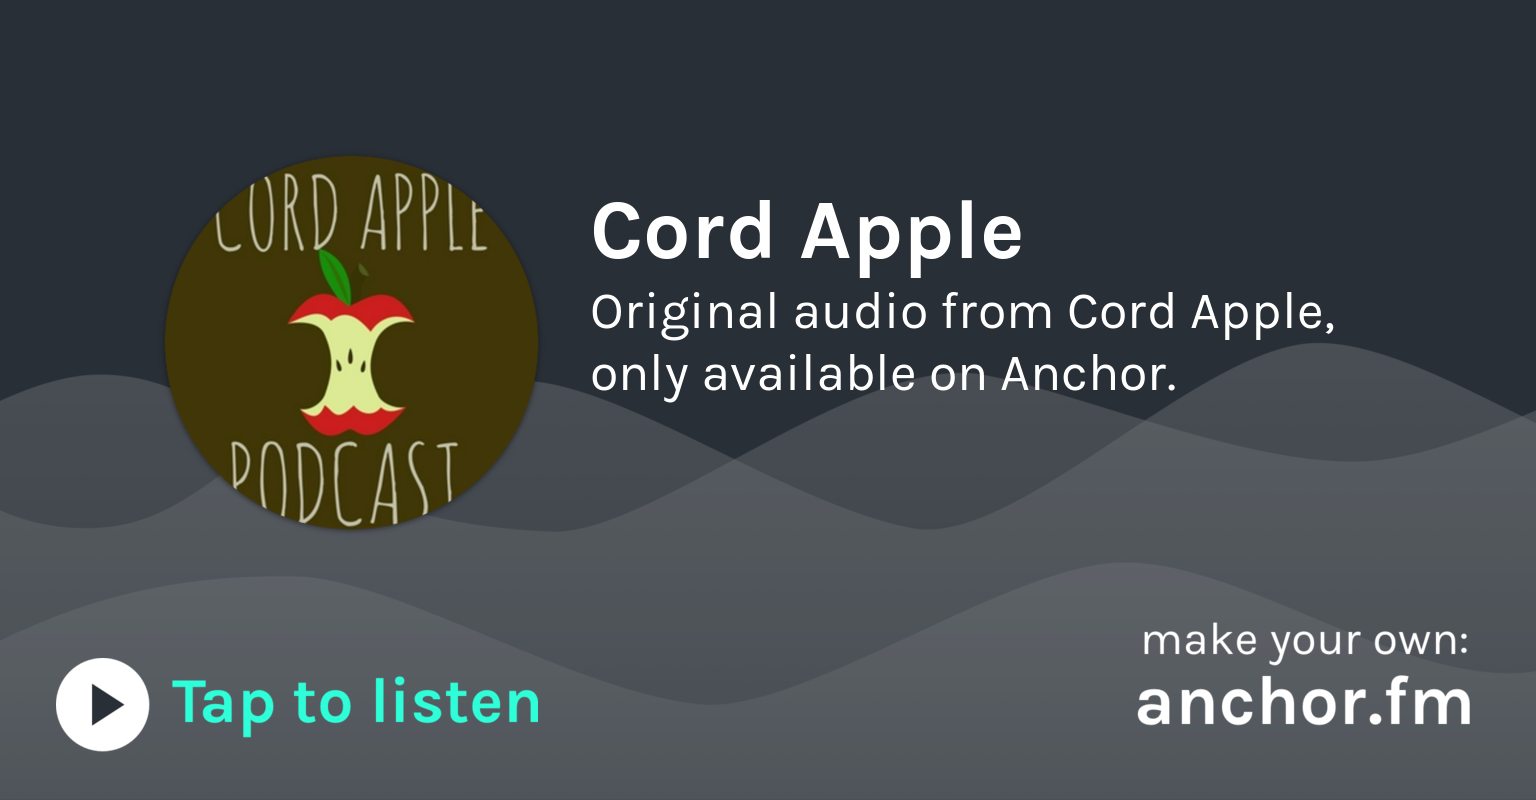 Introducing The Cord Apple Podcast! by Cord Apple Podcast